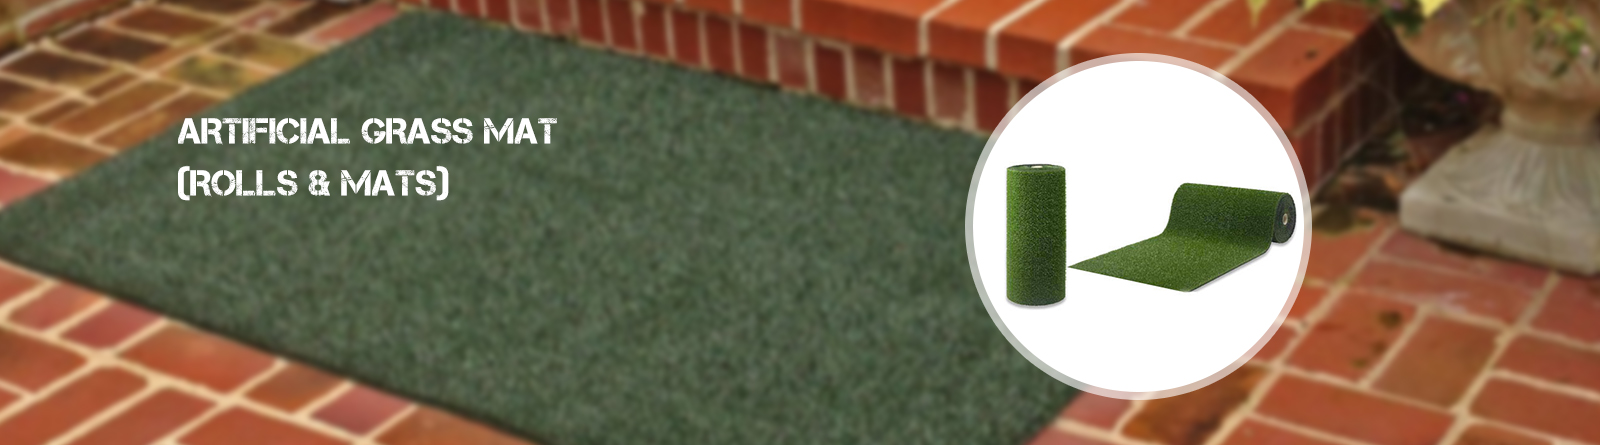 Artificial grass mat (Rolls & mats)